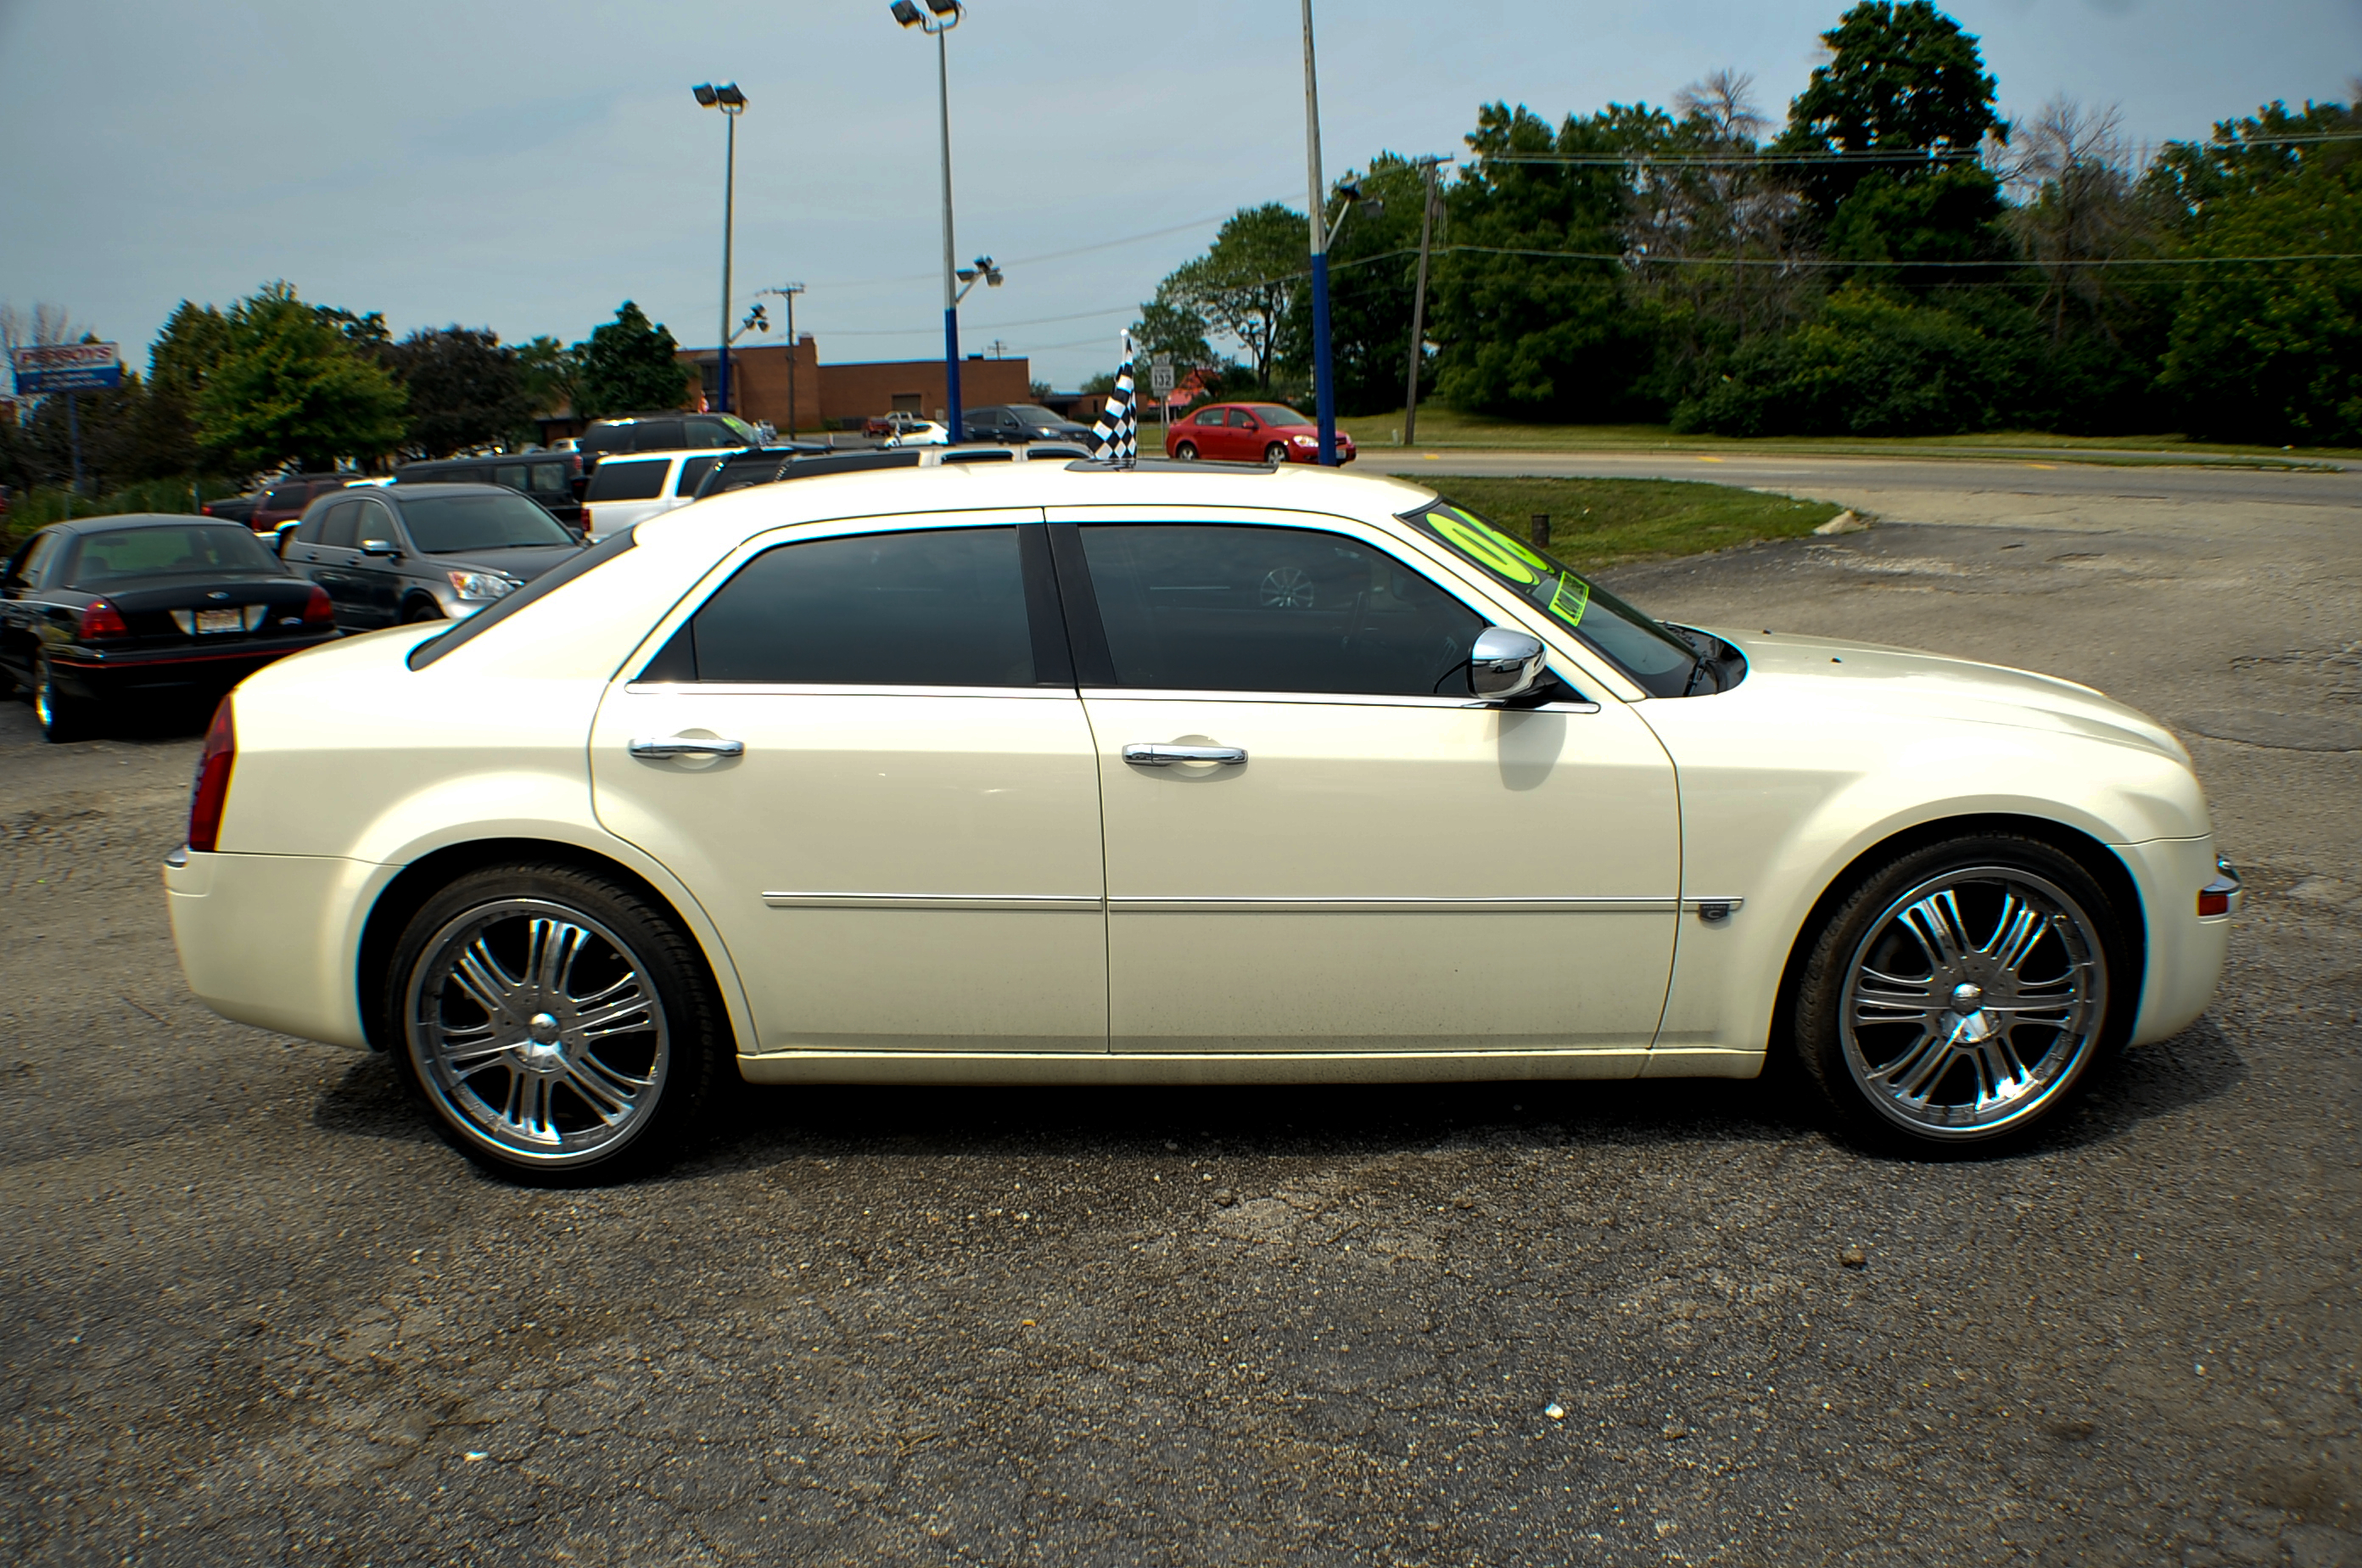 2006 Chrysler 300C Hemi Navigation White Sports Sedan Used Car Sale Libertyville